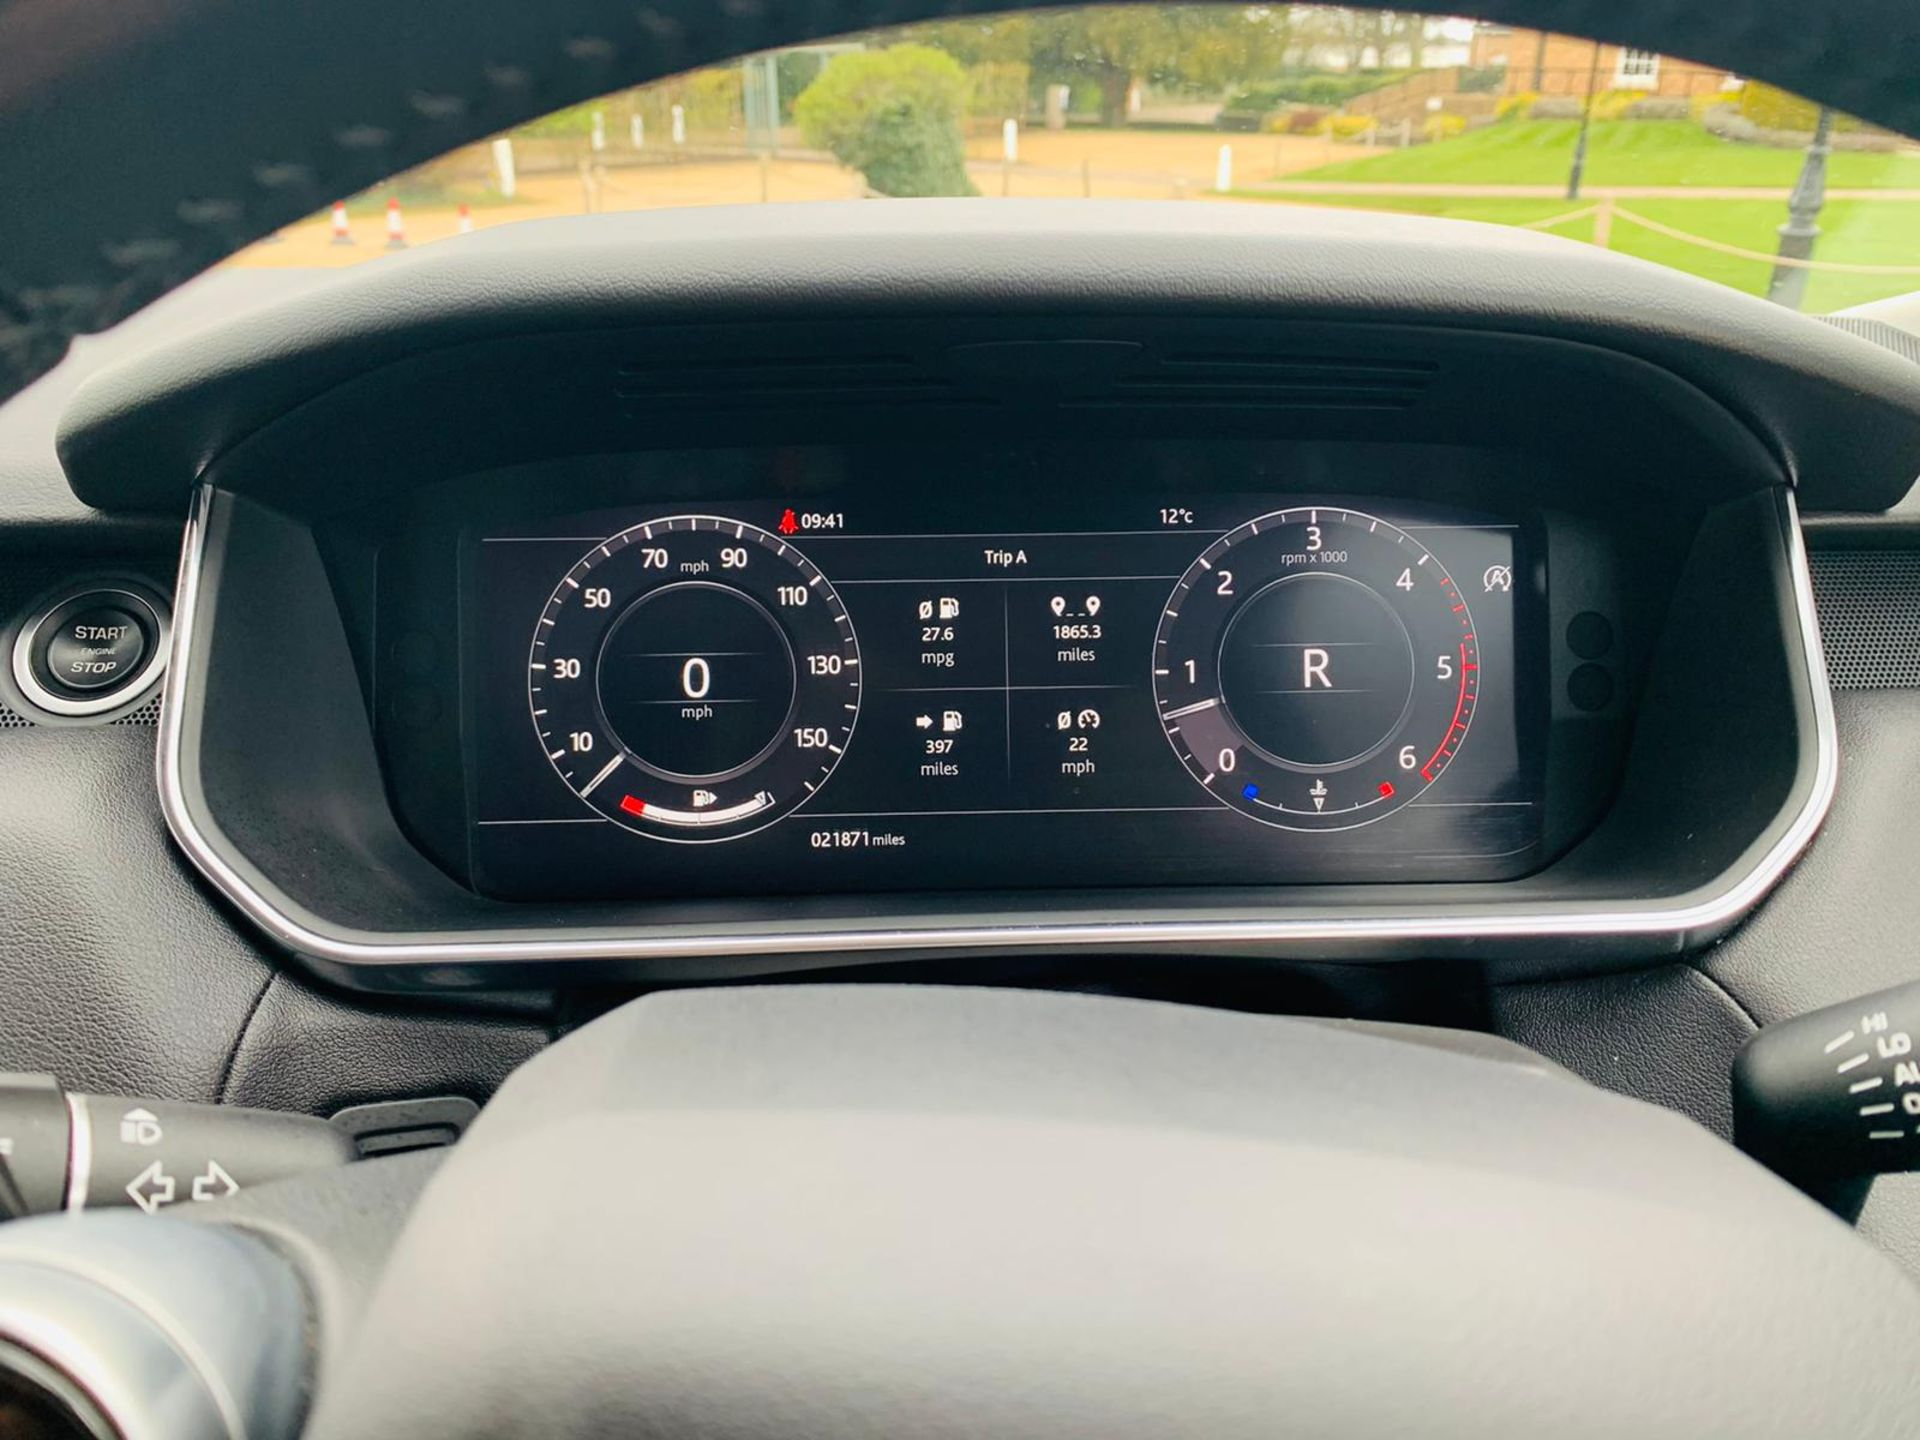 (RESERVE MET) Range Rover Sport 3.0 SDV6 HSE Auto - 2019 - 1 Keeper From New - Virtual Cockpit - - Image 42 of 42